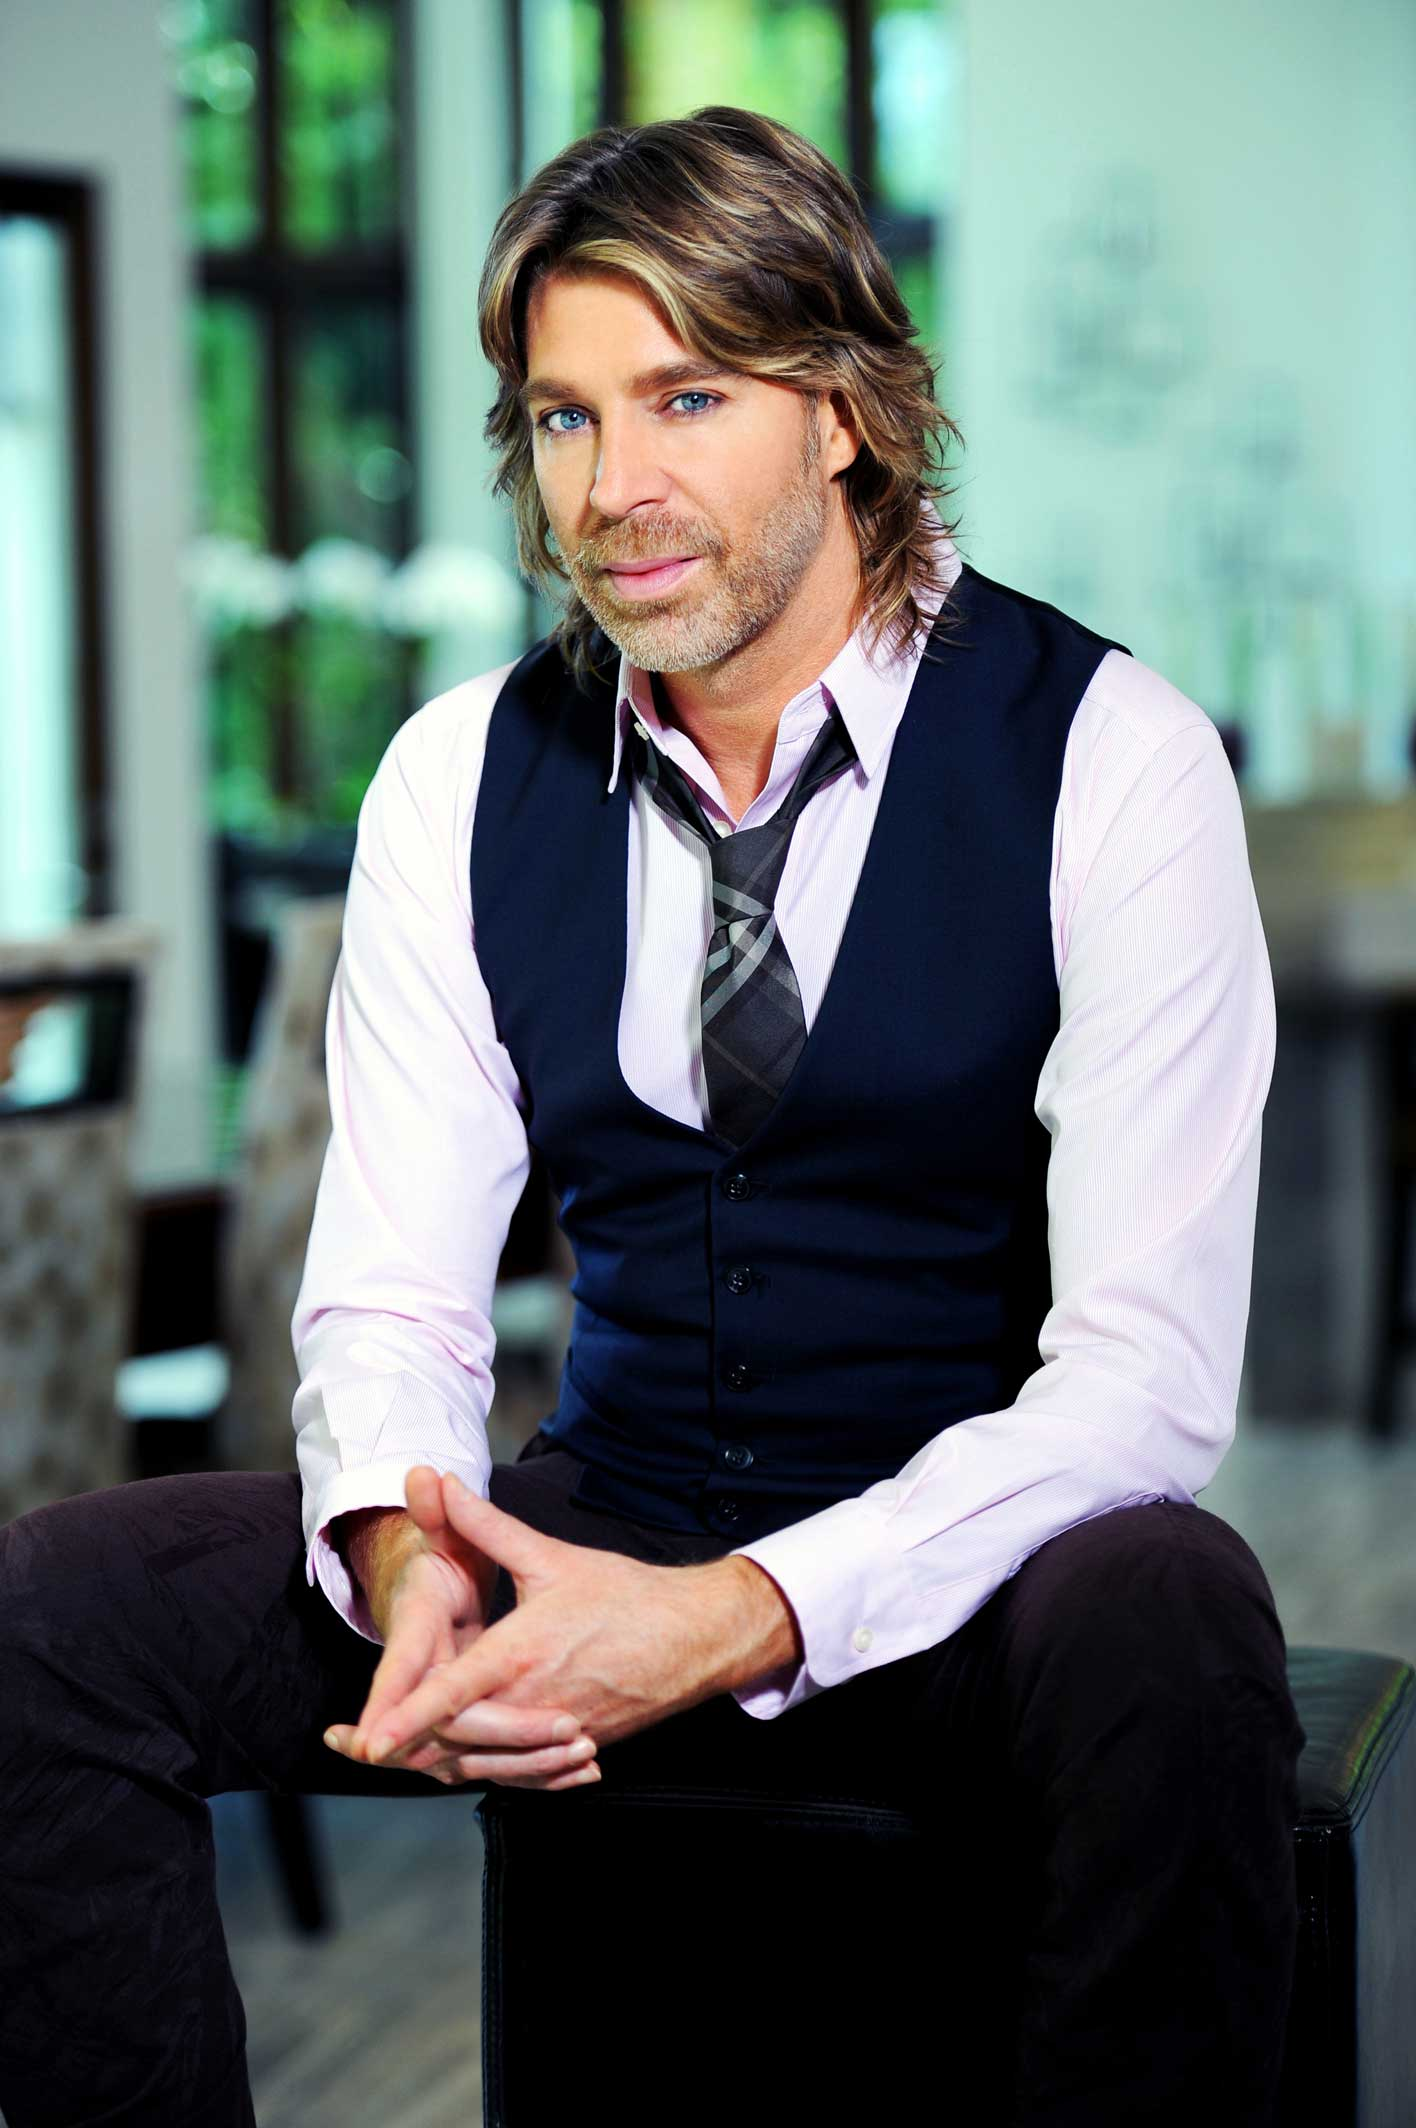 Celebrity Stylist Chaz Dean Completes his Third and Final Hollywood Salon Renovation